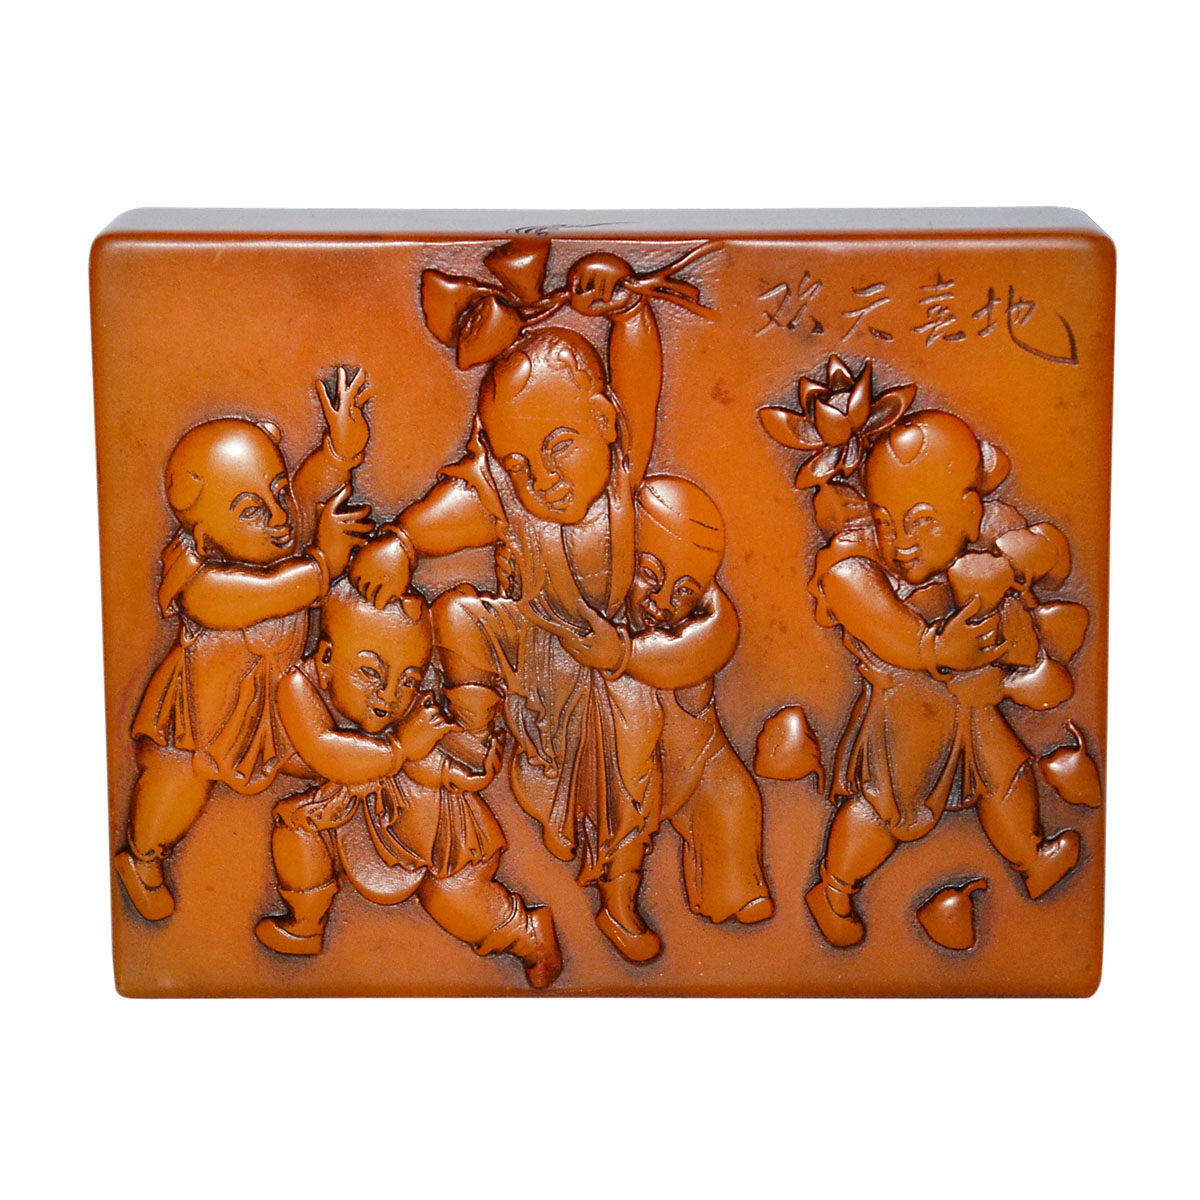 Lot 57 - 黃金黃田黃童戲詩句賞件 蘿蔔紋細密有致。 印文(劉大為印) A Finely Carved Rectangular Tianhuang Seal-Ornament Carved with